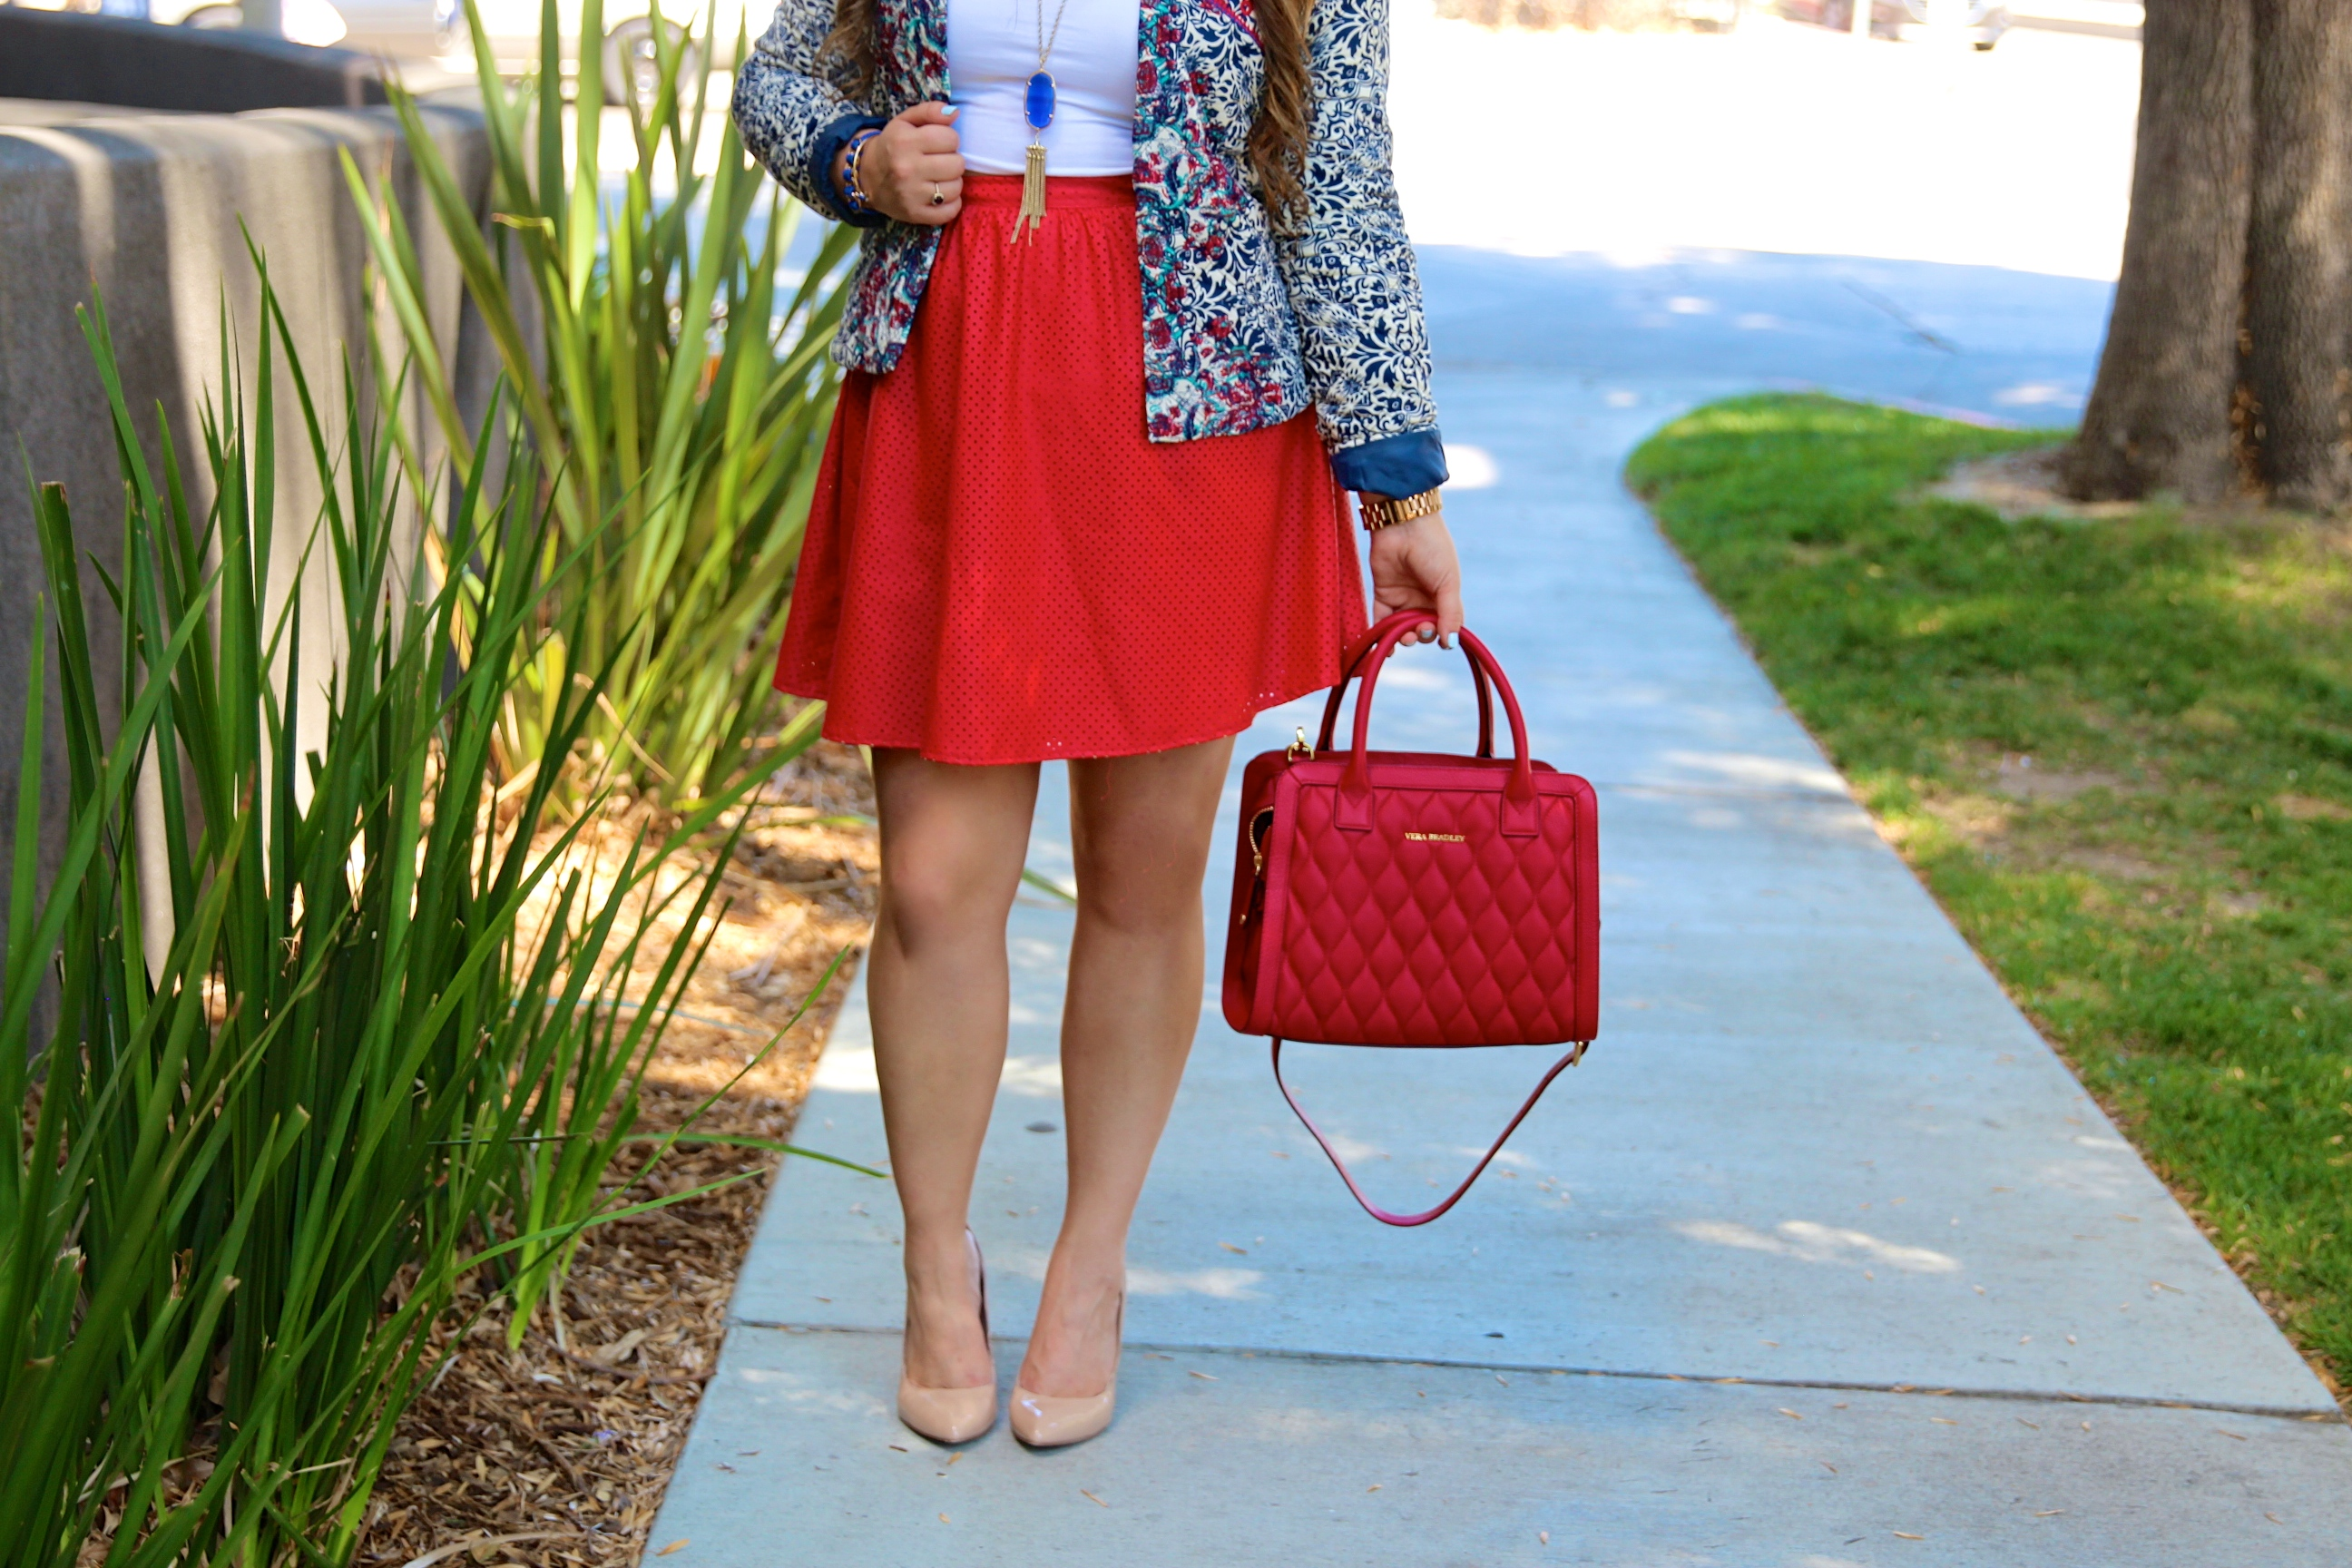 missyonmadison, melissa tierney, shabby apple, shabby apple jacket, embroidered jacket, cropped jacket, cropped printed blazer, red faux leather skirt, red a line skirt, nude pumps, steve madden pumps, nude pointed toe pumps, vera bradley, red vera bradley satchel, kendra scott rayne necklace, kendra scott necklace, white crop top, go jane crop top, ray bans, red mirrored aviators, red sunglasses, printed cropped jacket, brunette hairstyle, curled hair, red skirt, holiday style, fashion blogger, outfit inspo, ootd, fashion blogger, la blogger, vera bradley style,